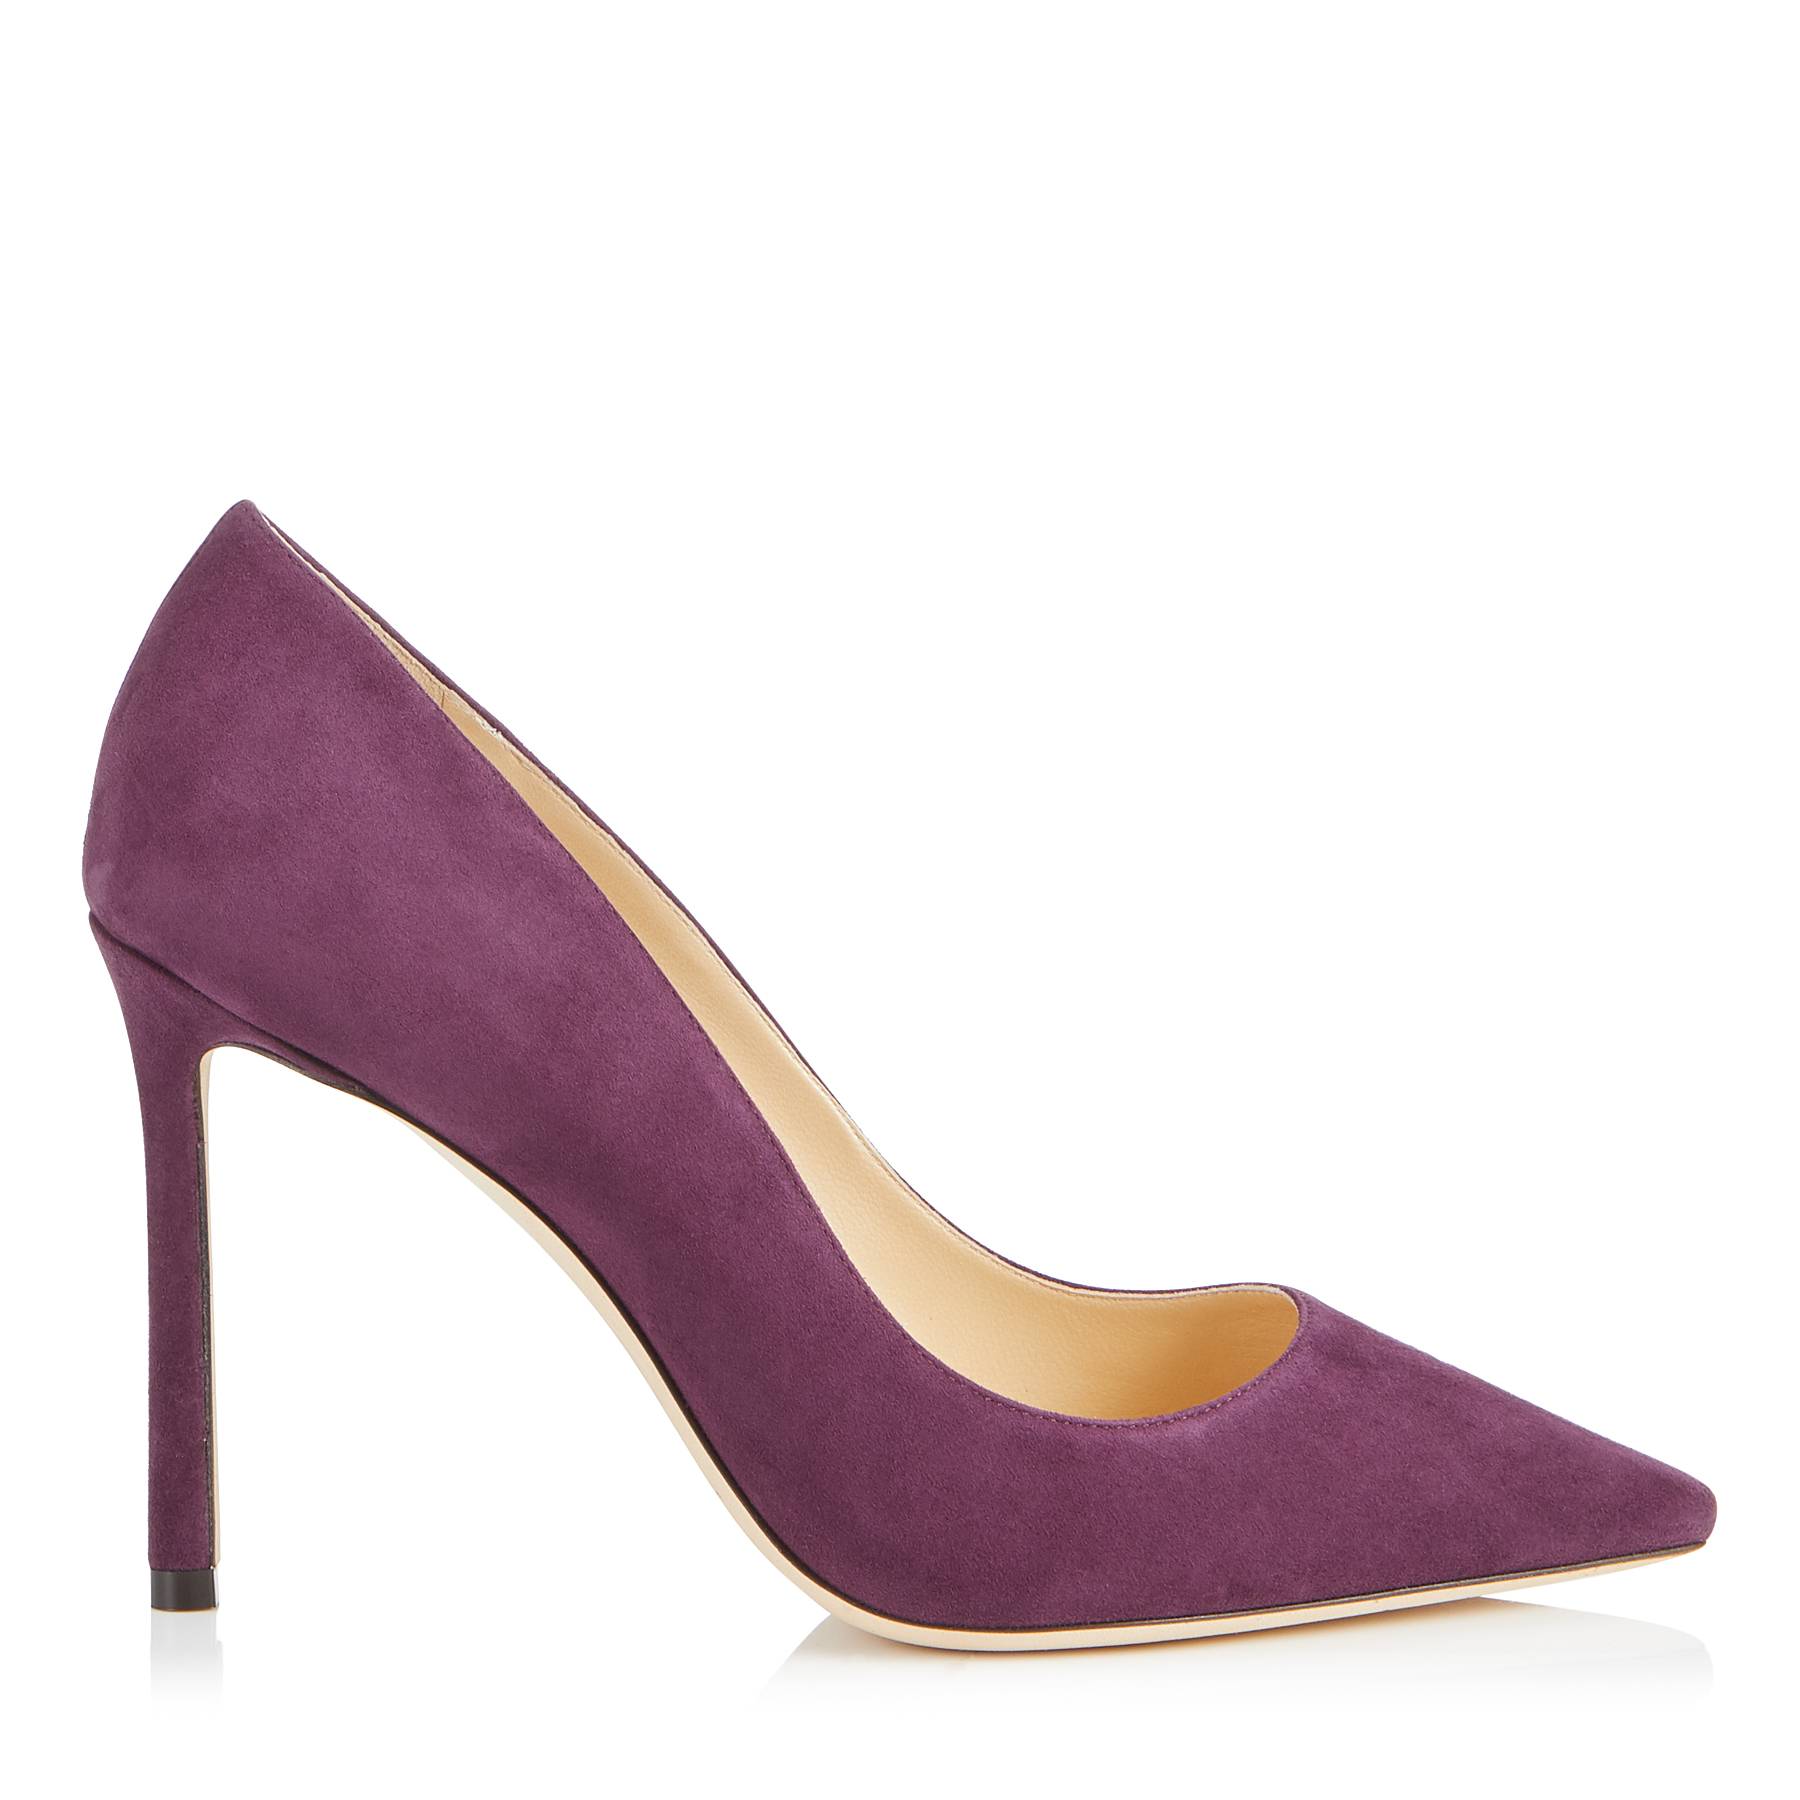 ROMY 100 Grape Suede Pointy Toe Pumps